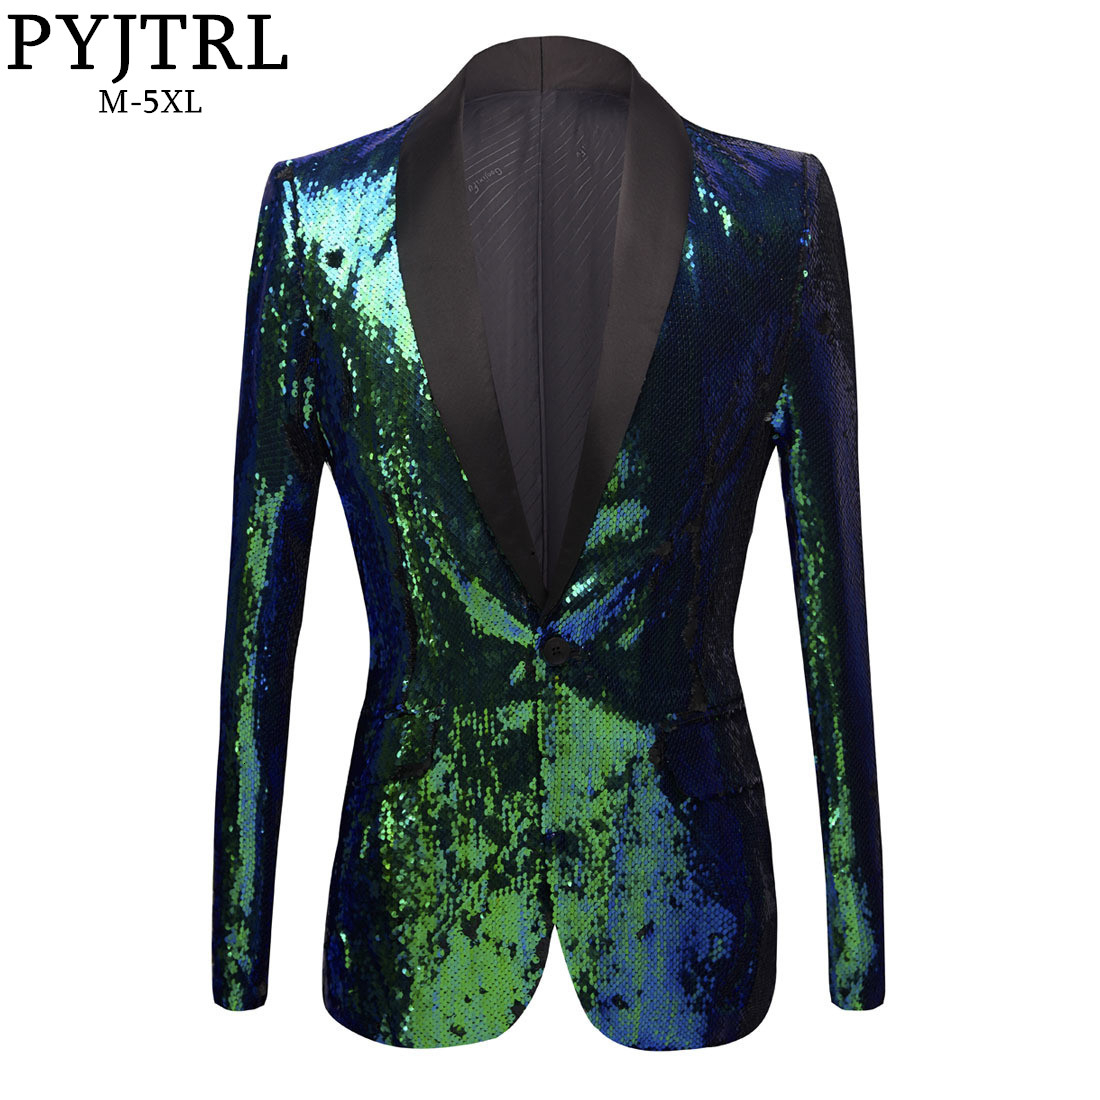 PYJTRL New <font><b>Mens</b></font> Shawl Lapel Shiny <font><b>Green</b></font> Blue <font><b>Sequins</b></font> Blazers DJ Night Club Slim Fit Suit <font><b>Jacket</b></font> Stage Singers Costume Prom Dress image